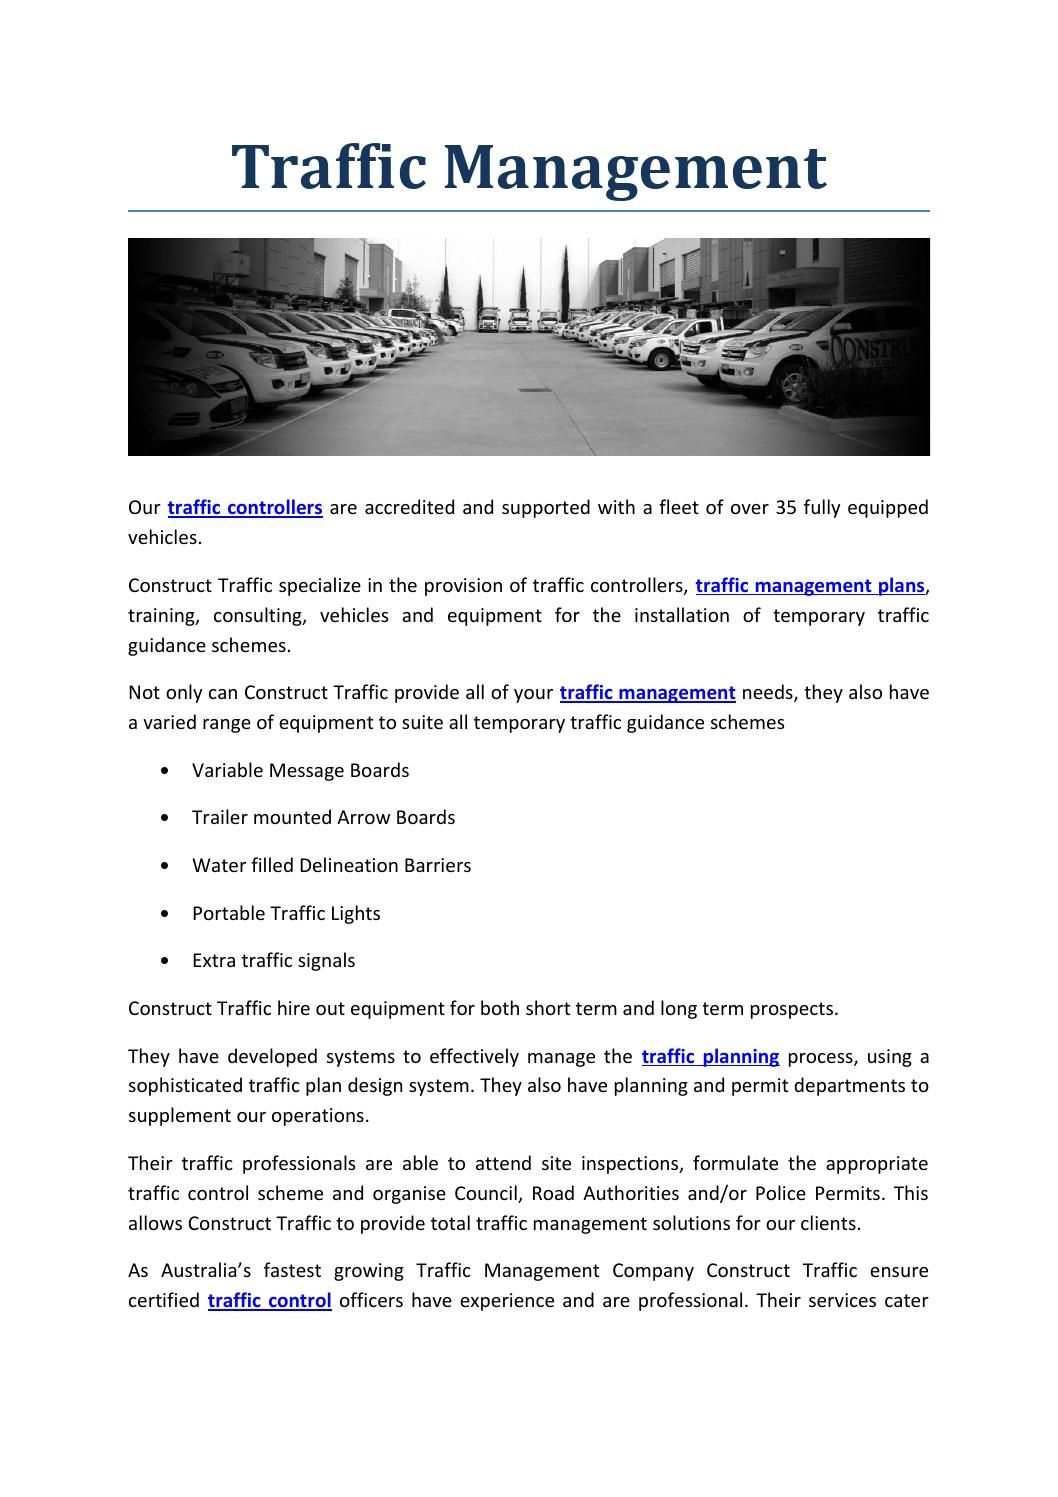 Traffic Management Melbourne  Melbourne And Management